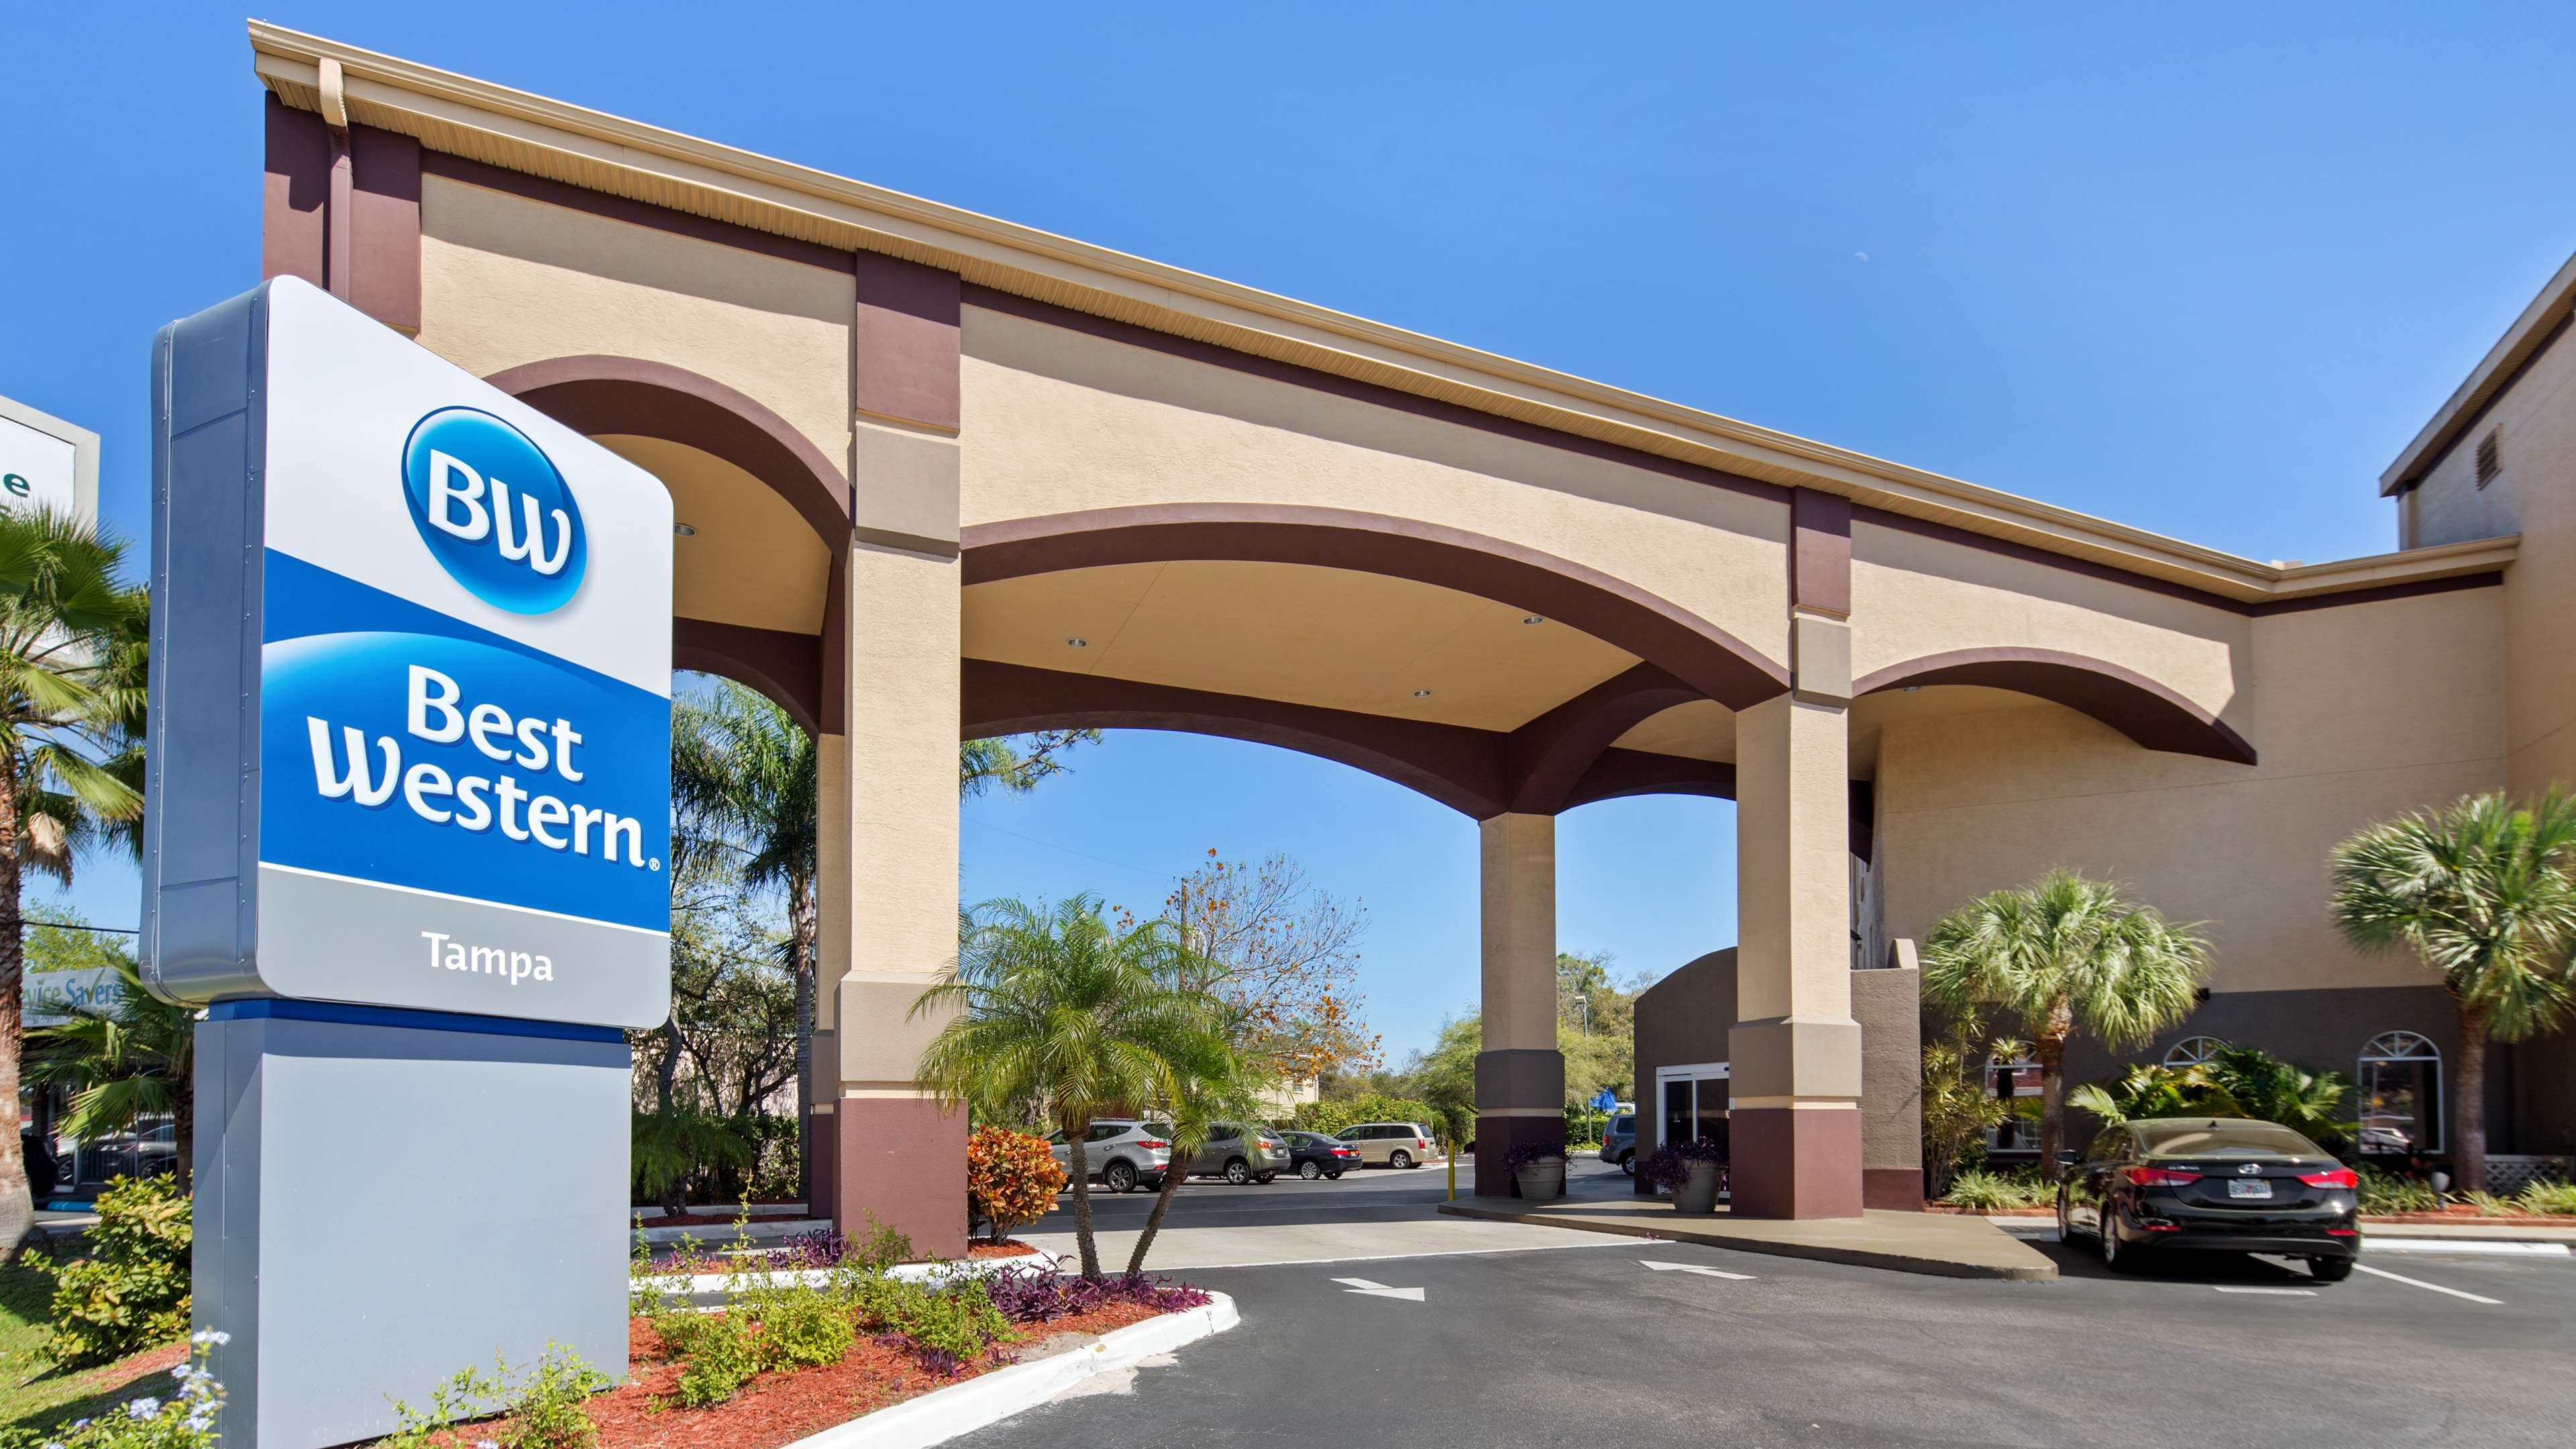 Best Western Tampa image 0